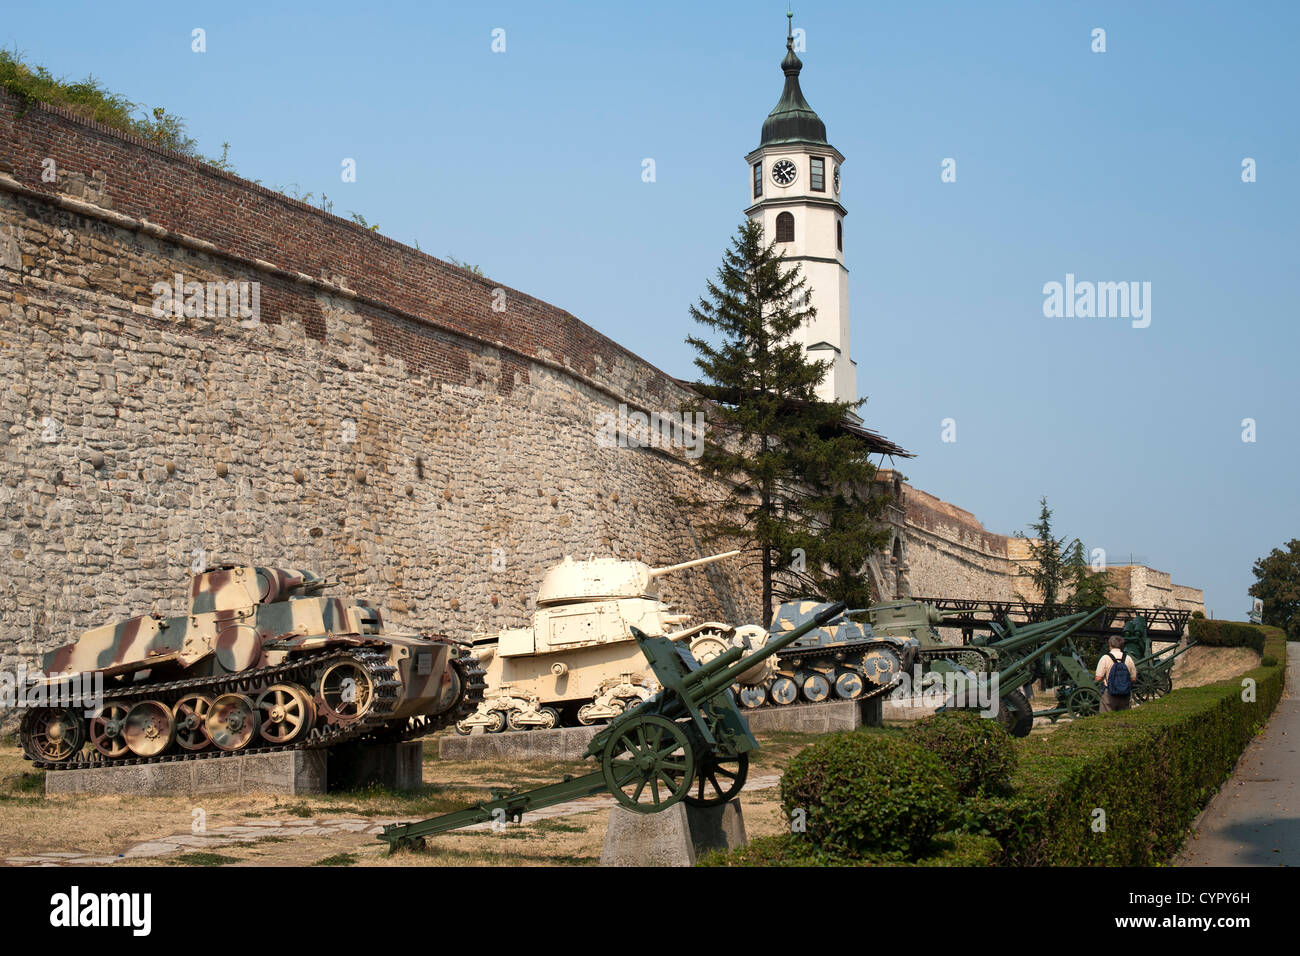 Tanks on display at the military museum in Kalemegdan castle in Belgrade, the capital of Serbia. - Stock Image